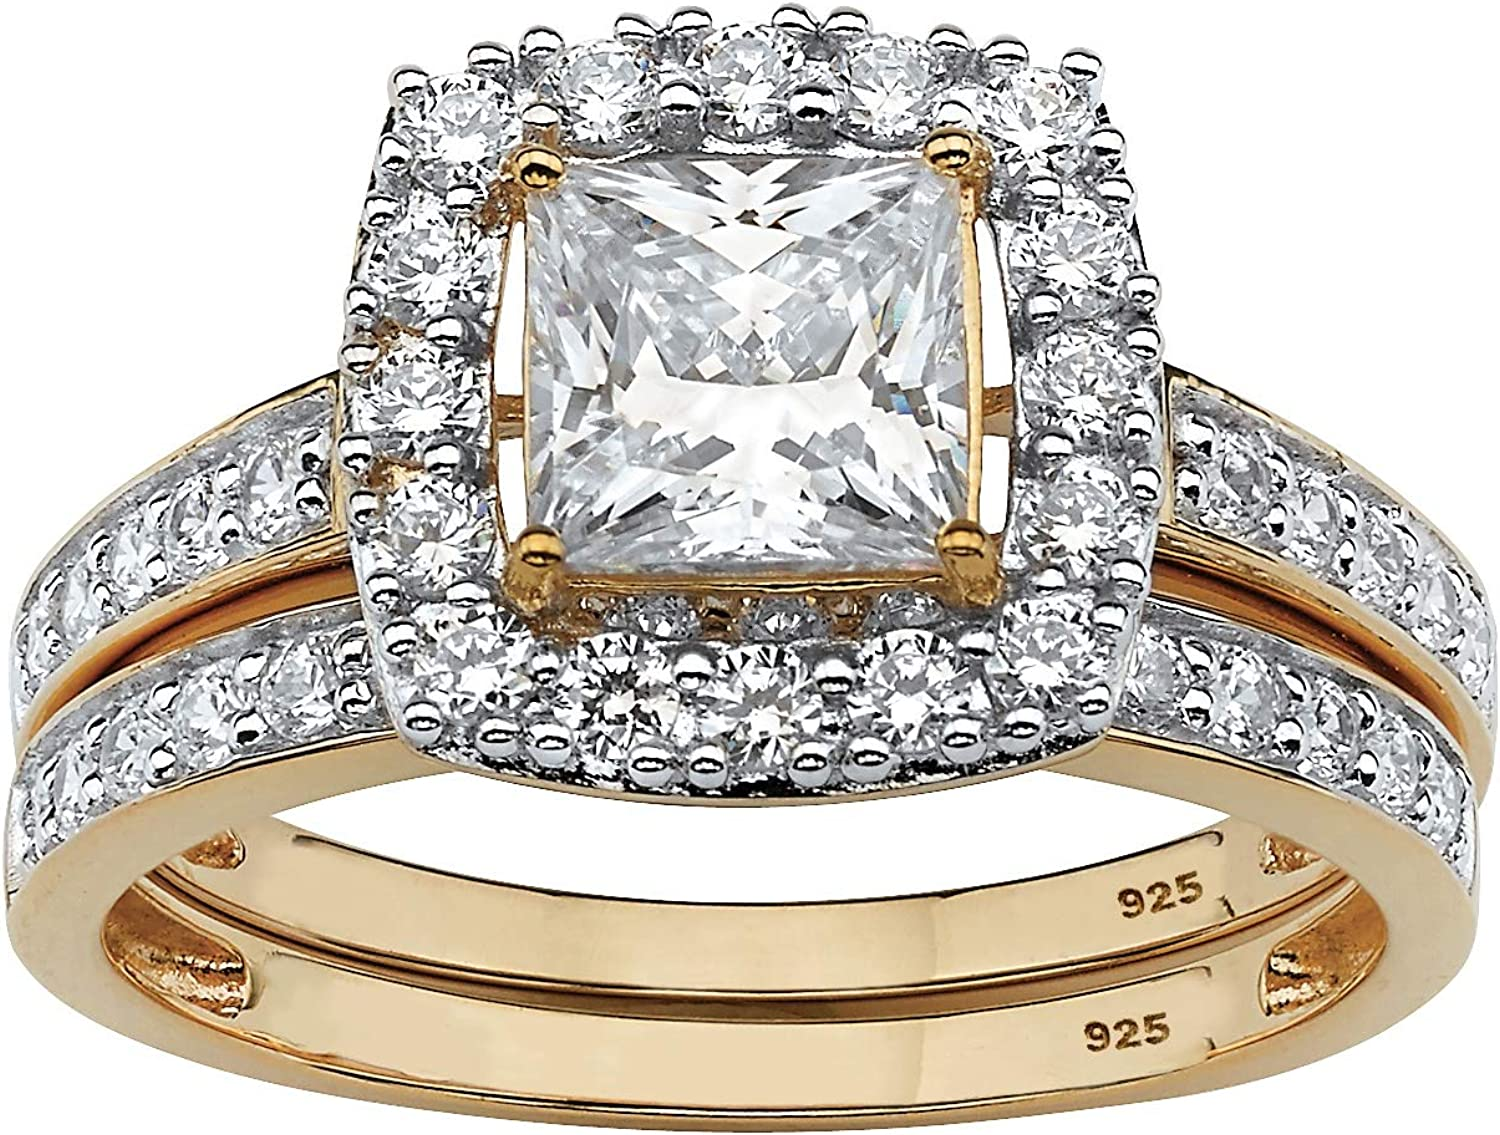 18K Yellow Gold over Sterling Silver Quantity limited Cut Cubic Zirconia Princess Mail order cheap